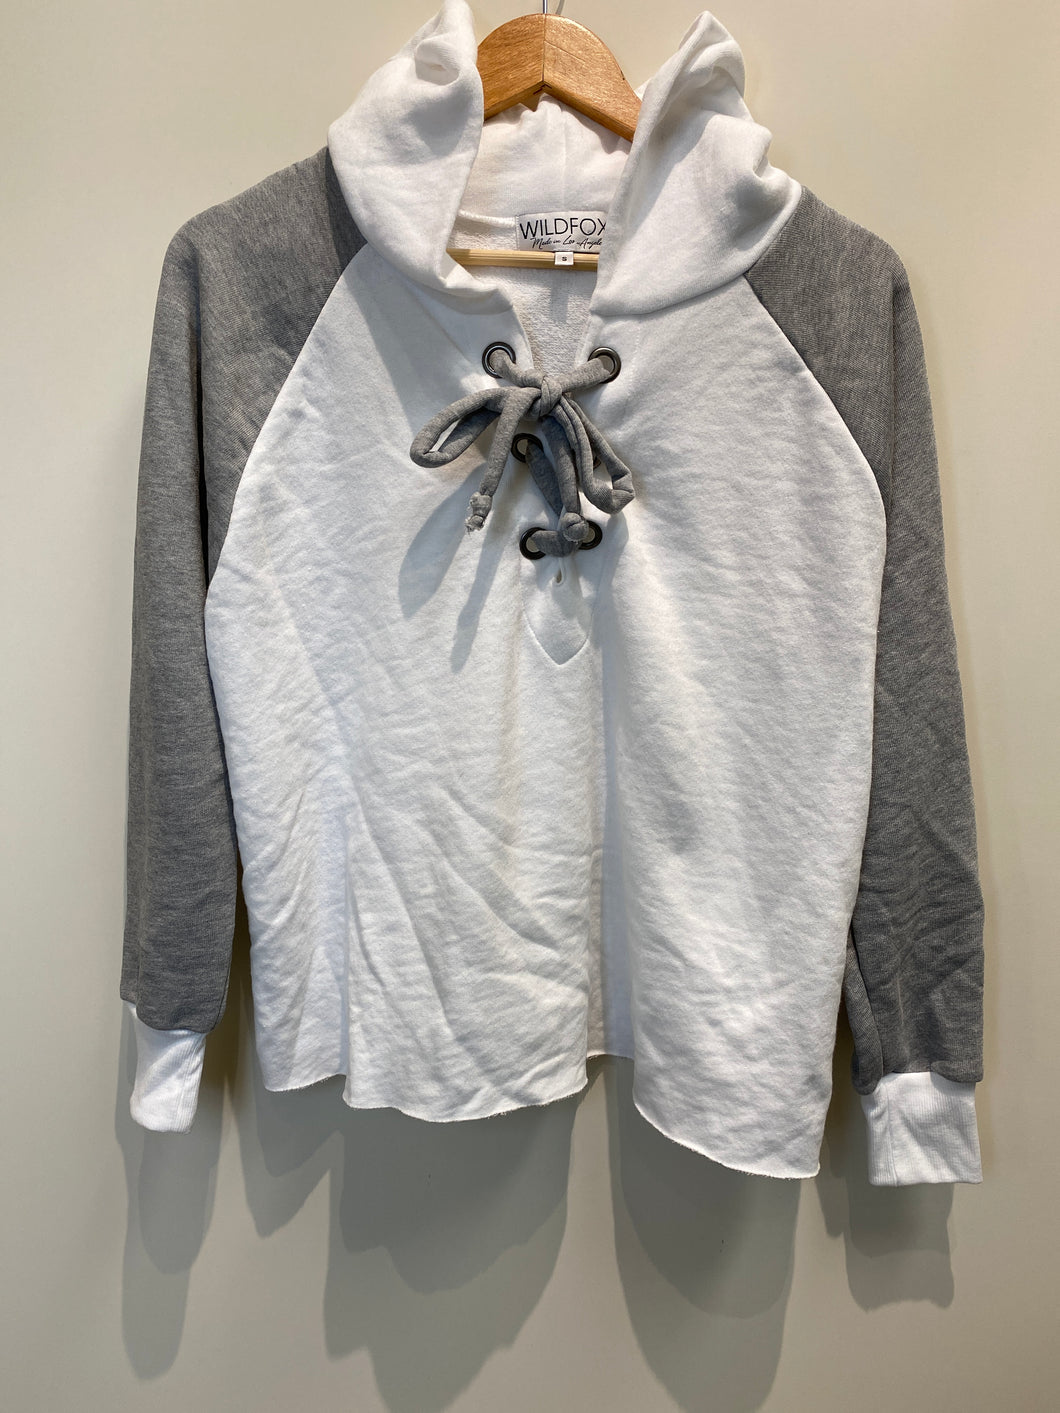 Wildfox Womens Sweatshirt Size Small